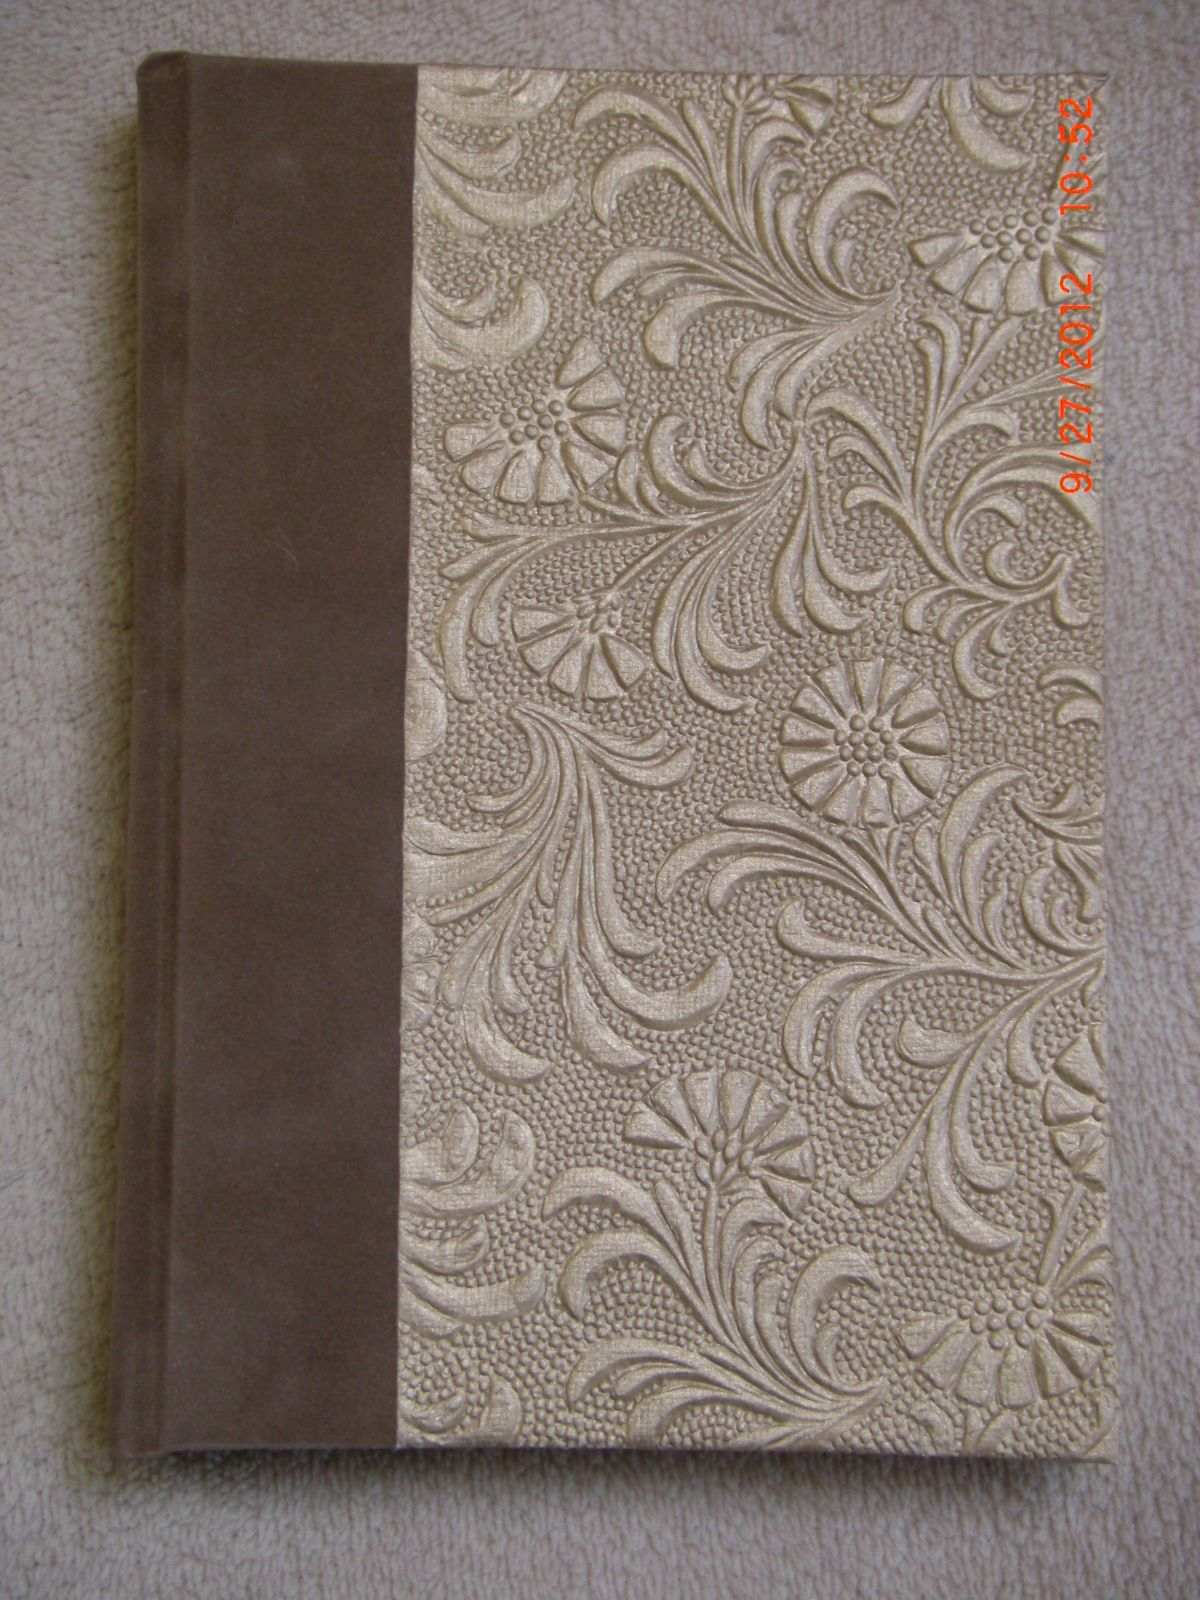 Blank journal with imitation suede spine and embossed golden flowers on cover. Made by Roxanne